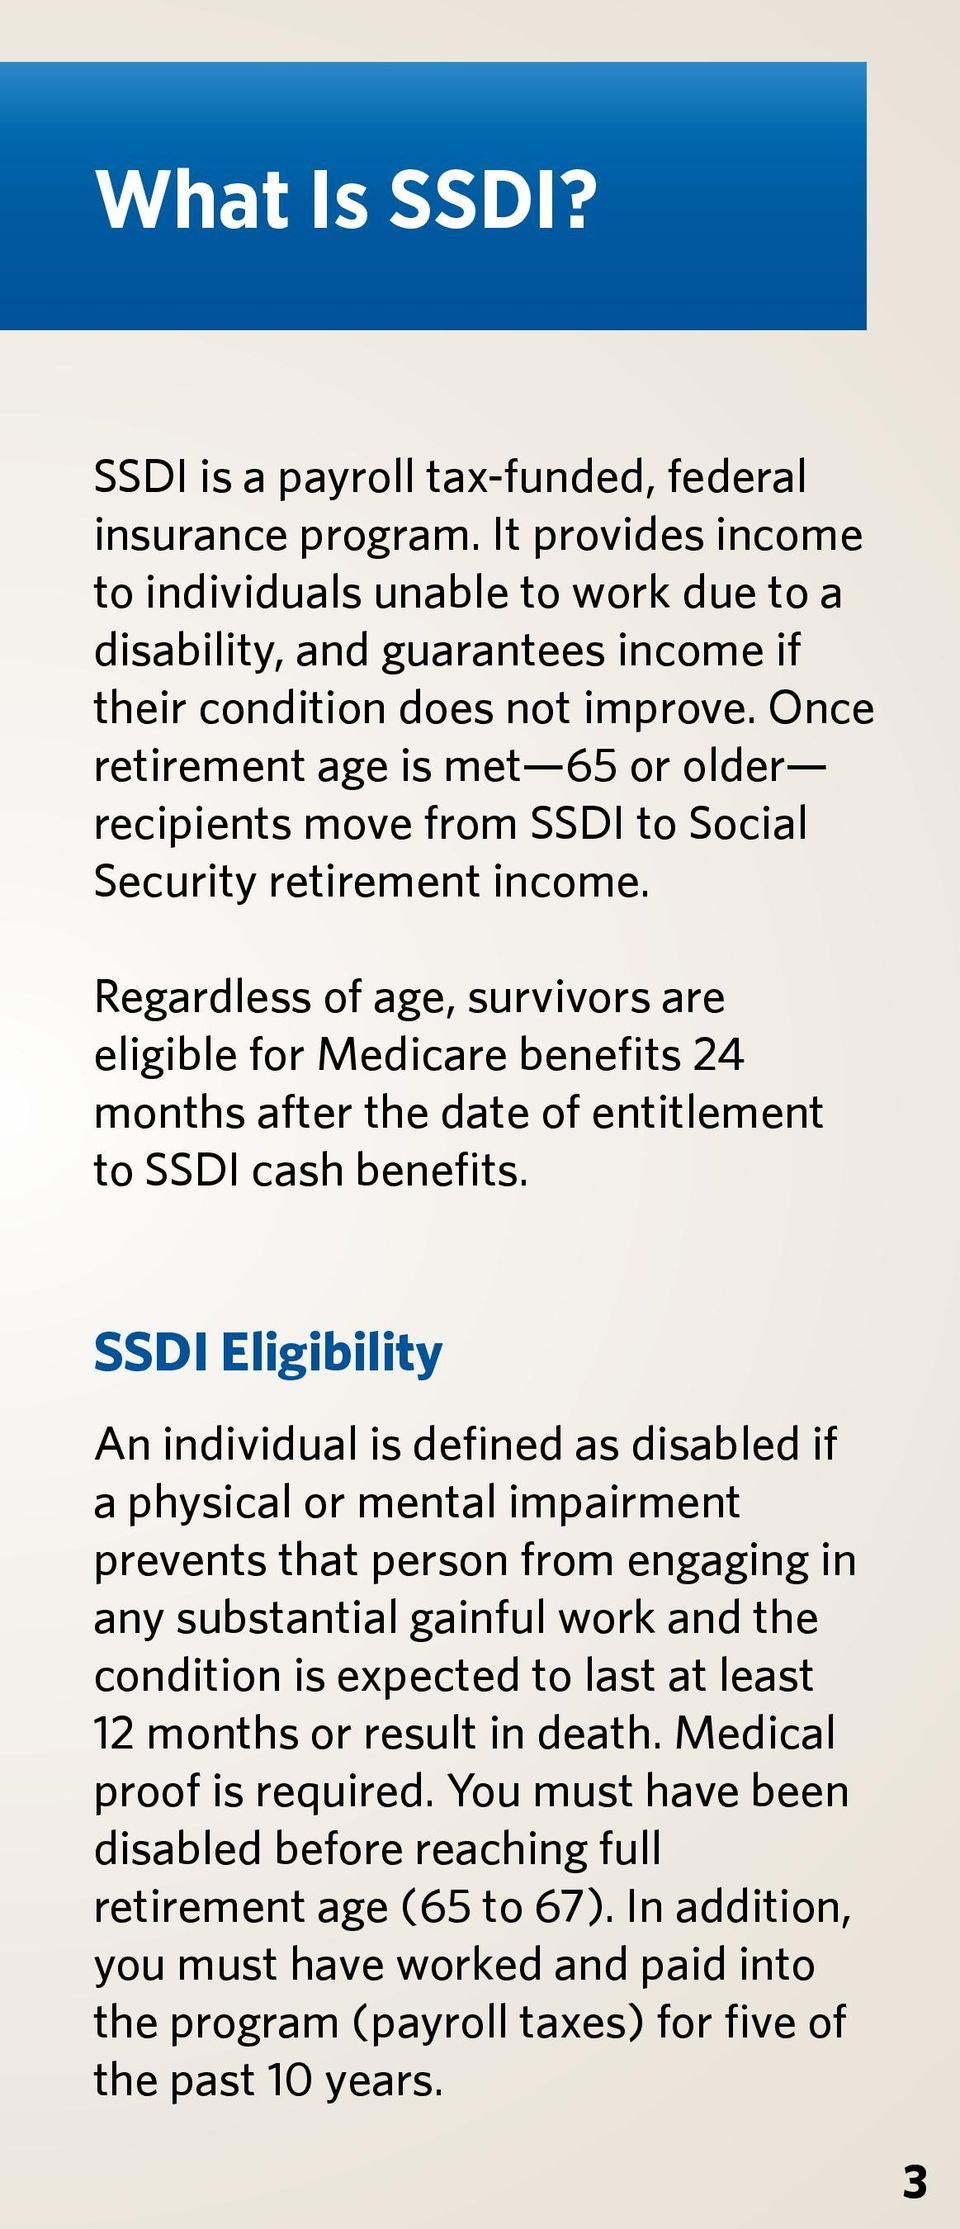 Regardless of age, survivors are eligible for Medicare benefits 24 months after the date of entitlement to SSDI cash benefits.